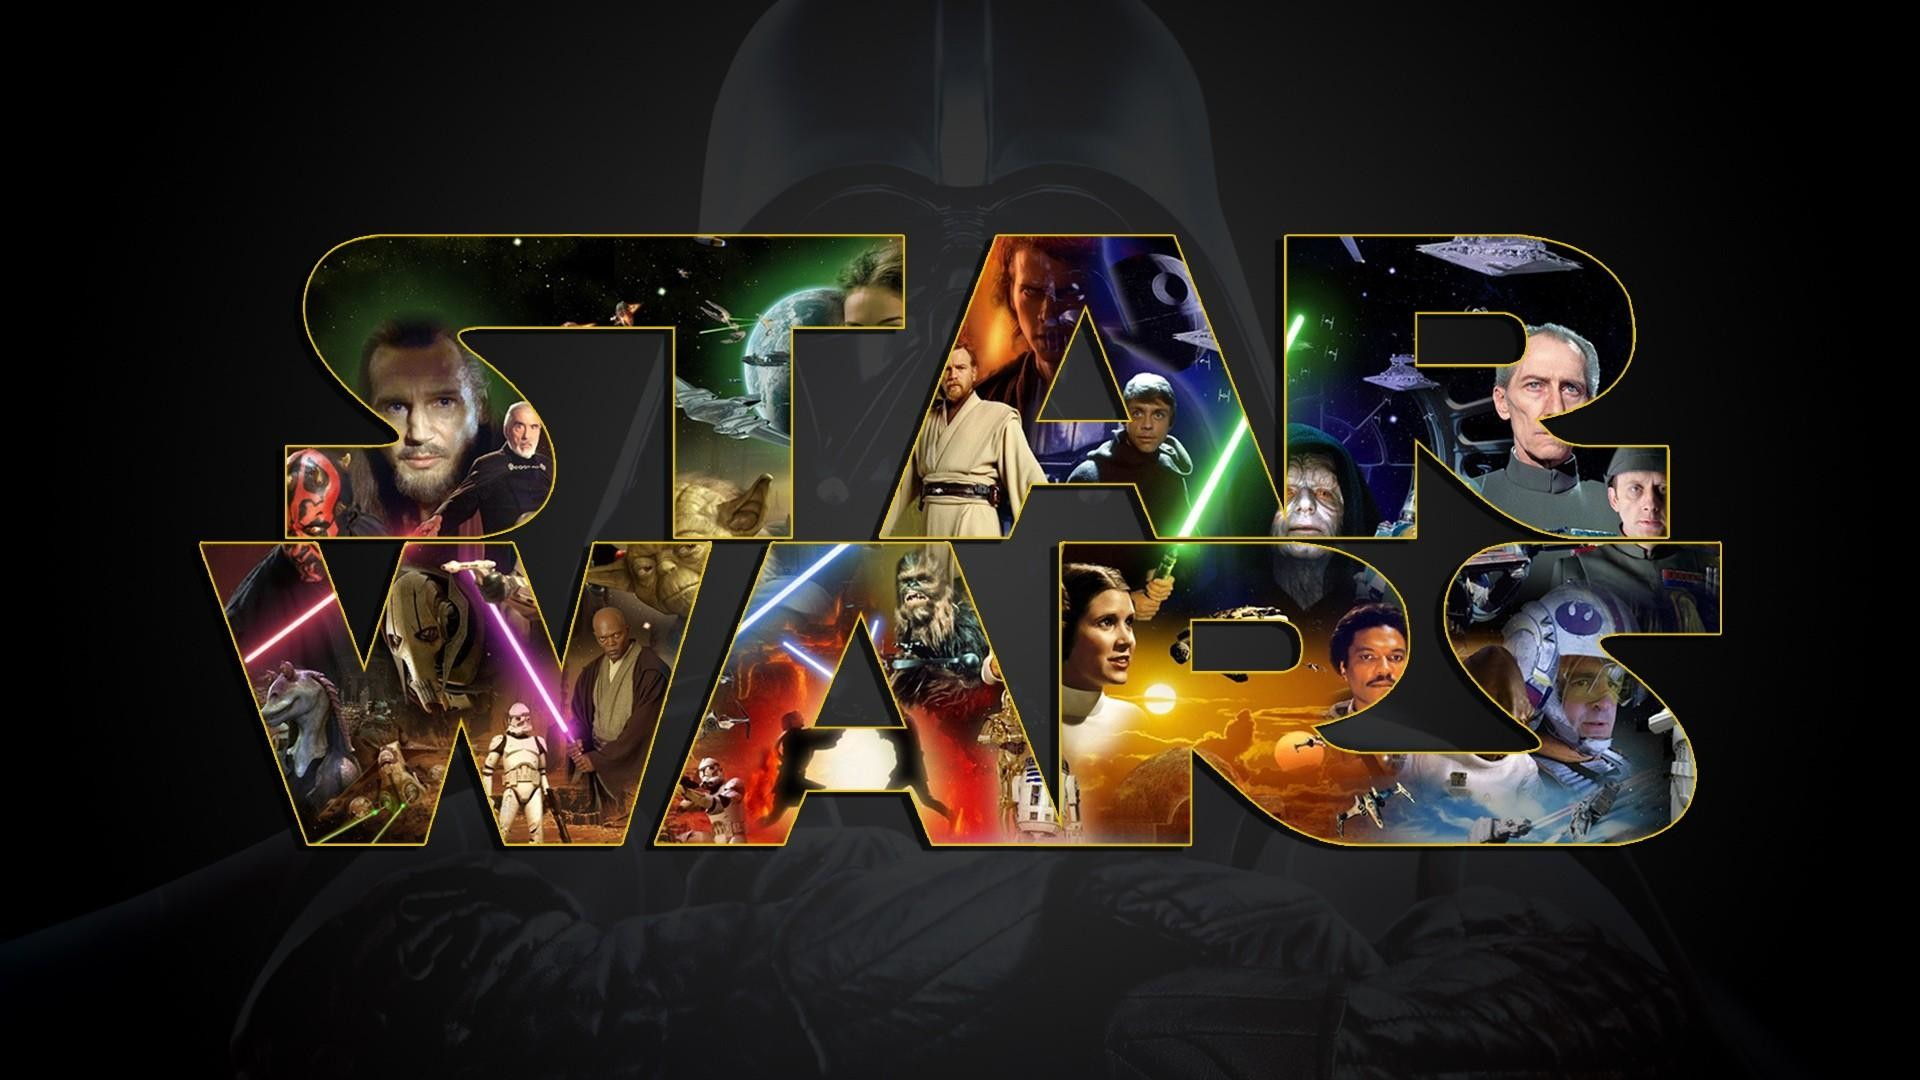 1920x1080 Star-Wars. really great hi resolution wallpaper with a good montage of  characters from all of the movies